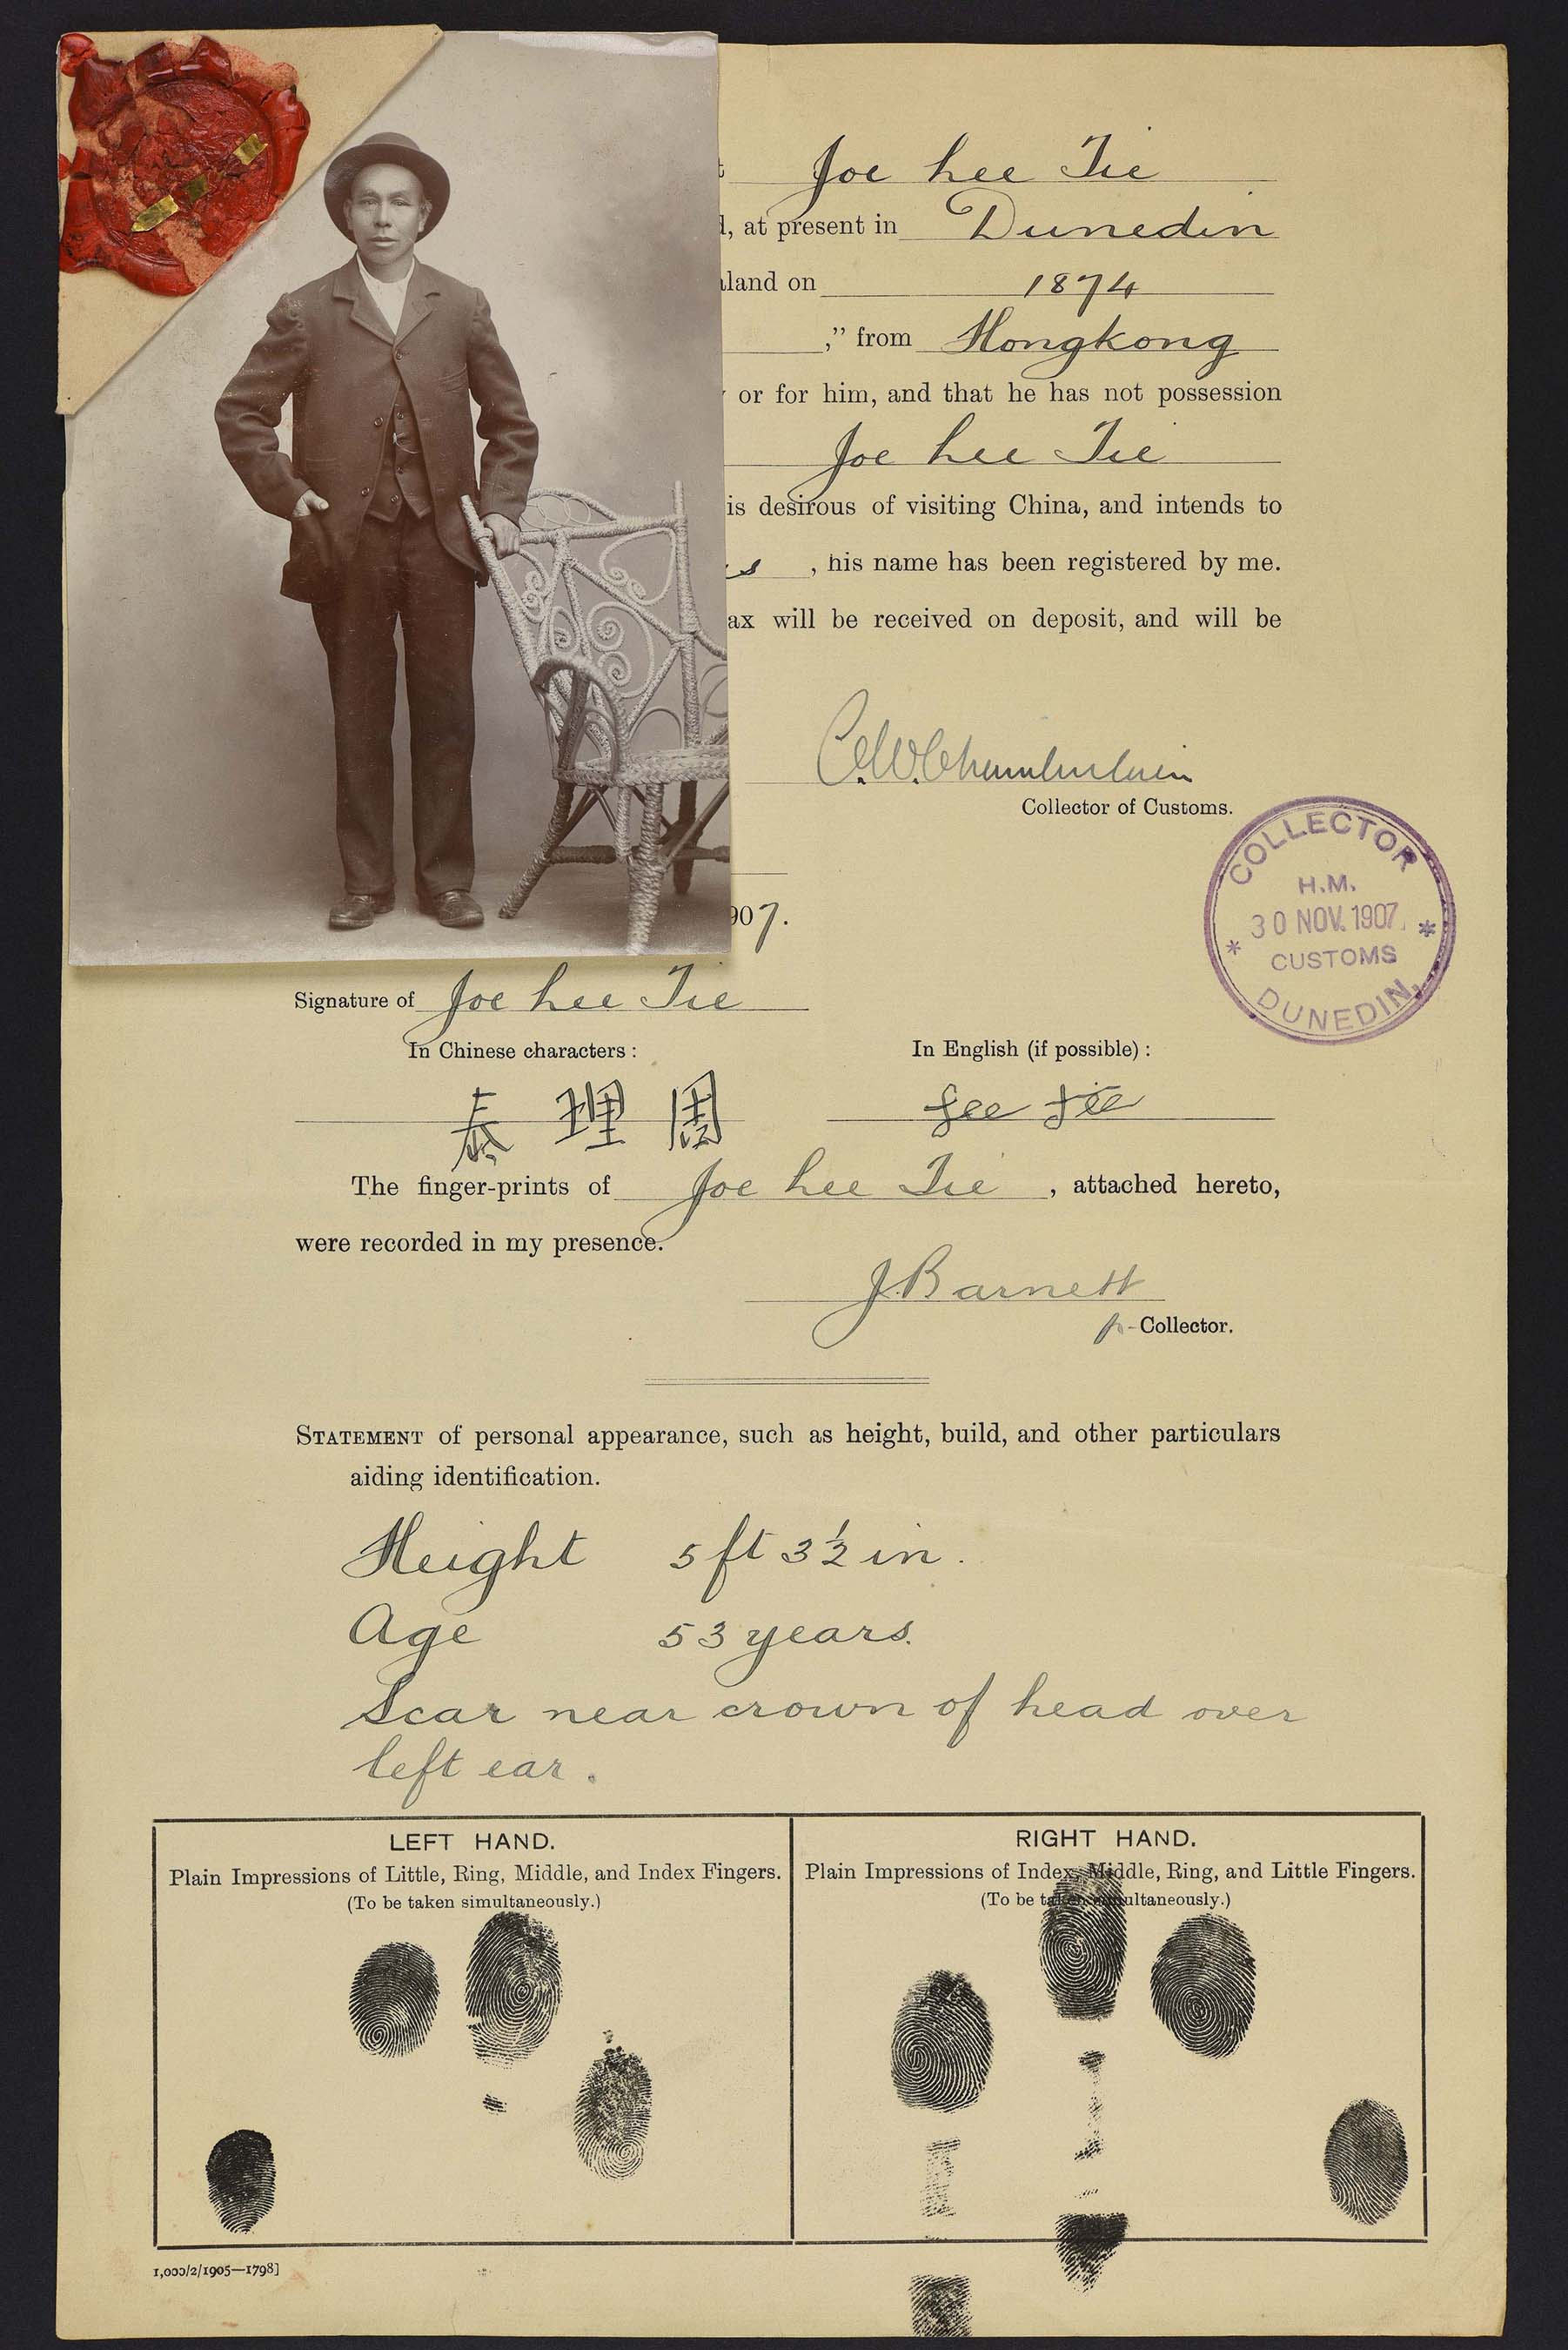 Sepia photo of a standing Chinese man attached to his immigration papers.